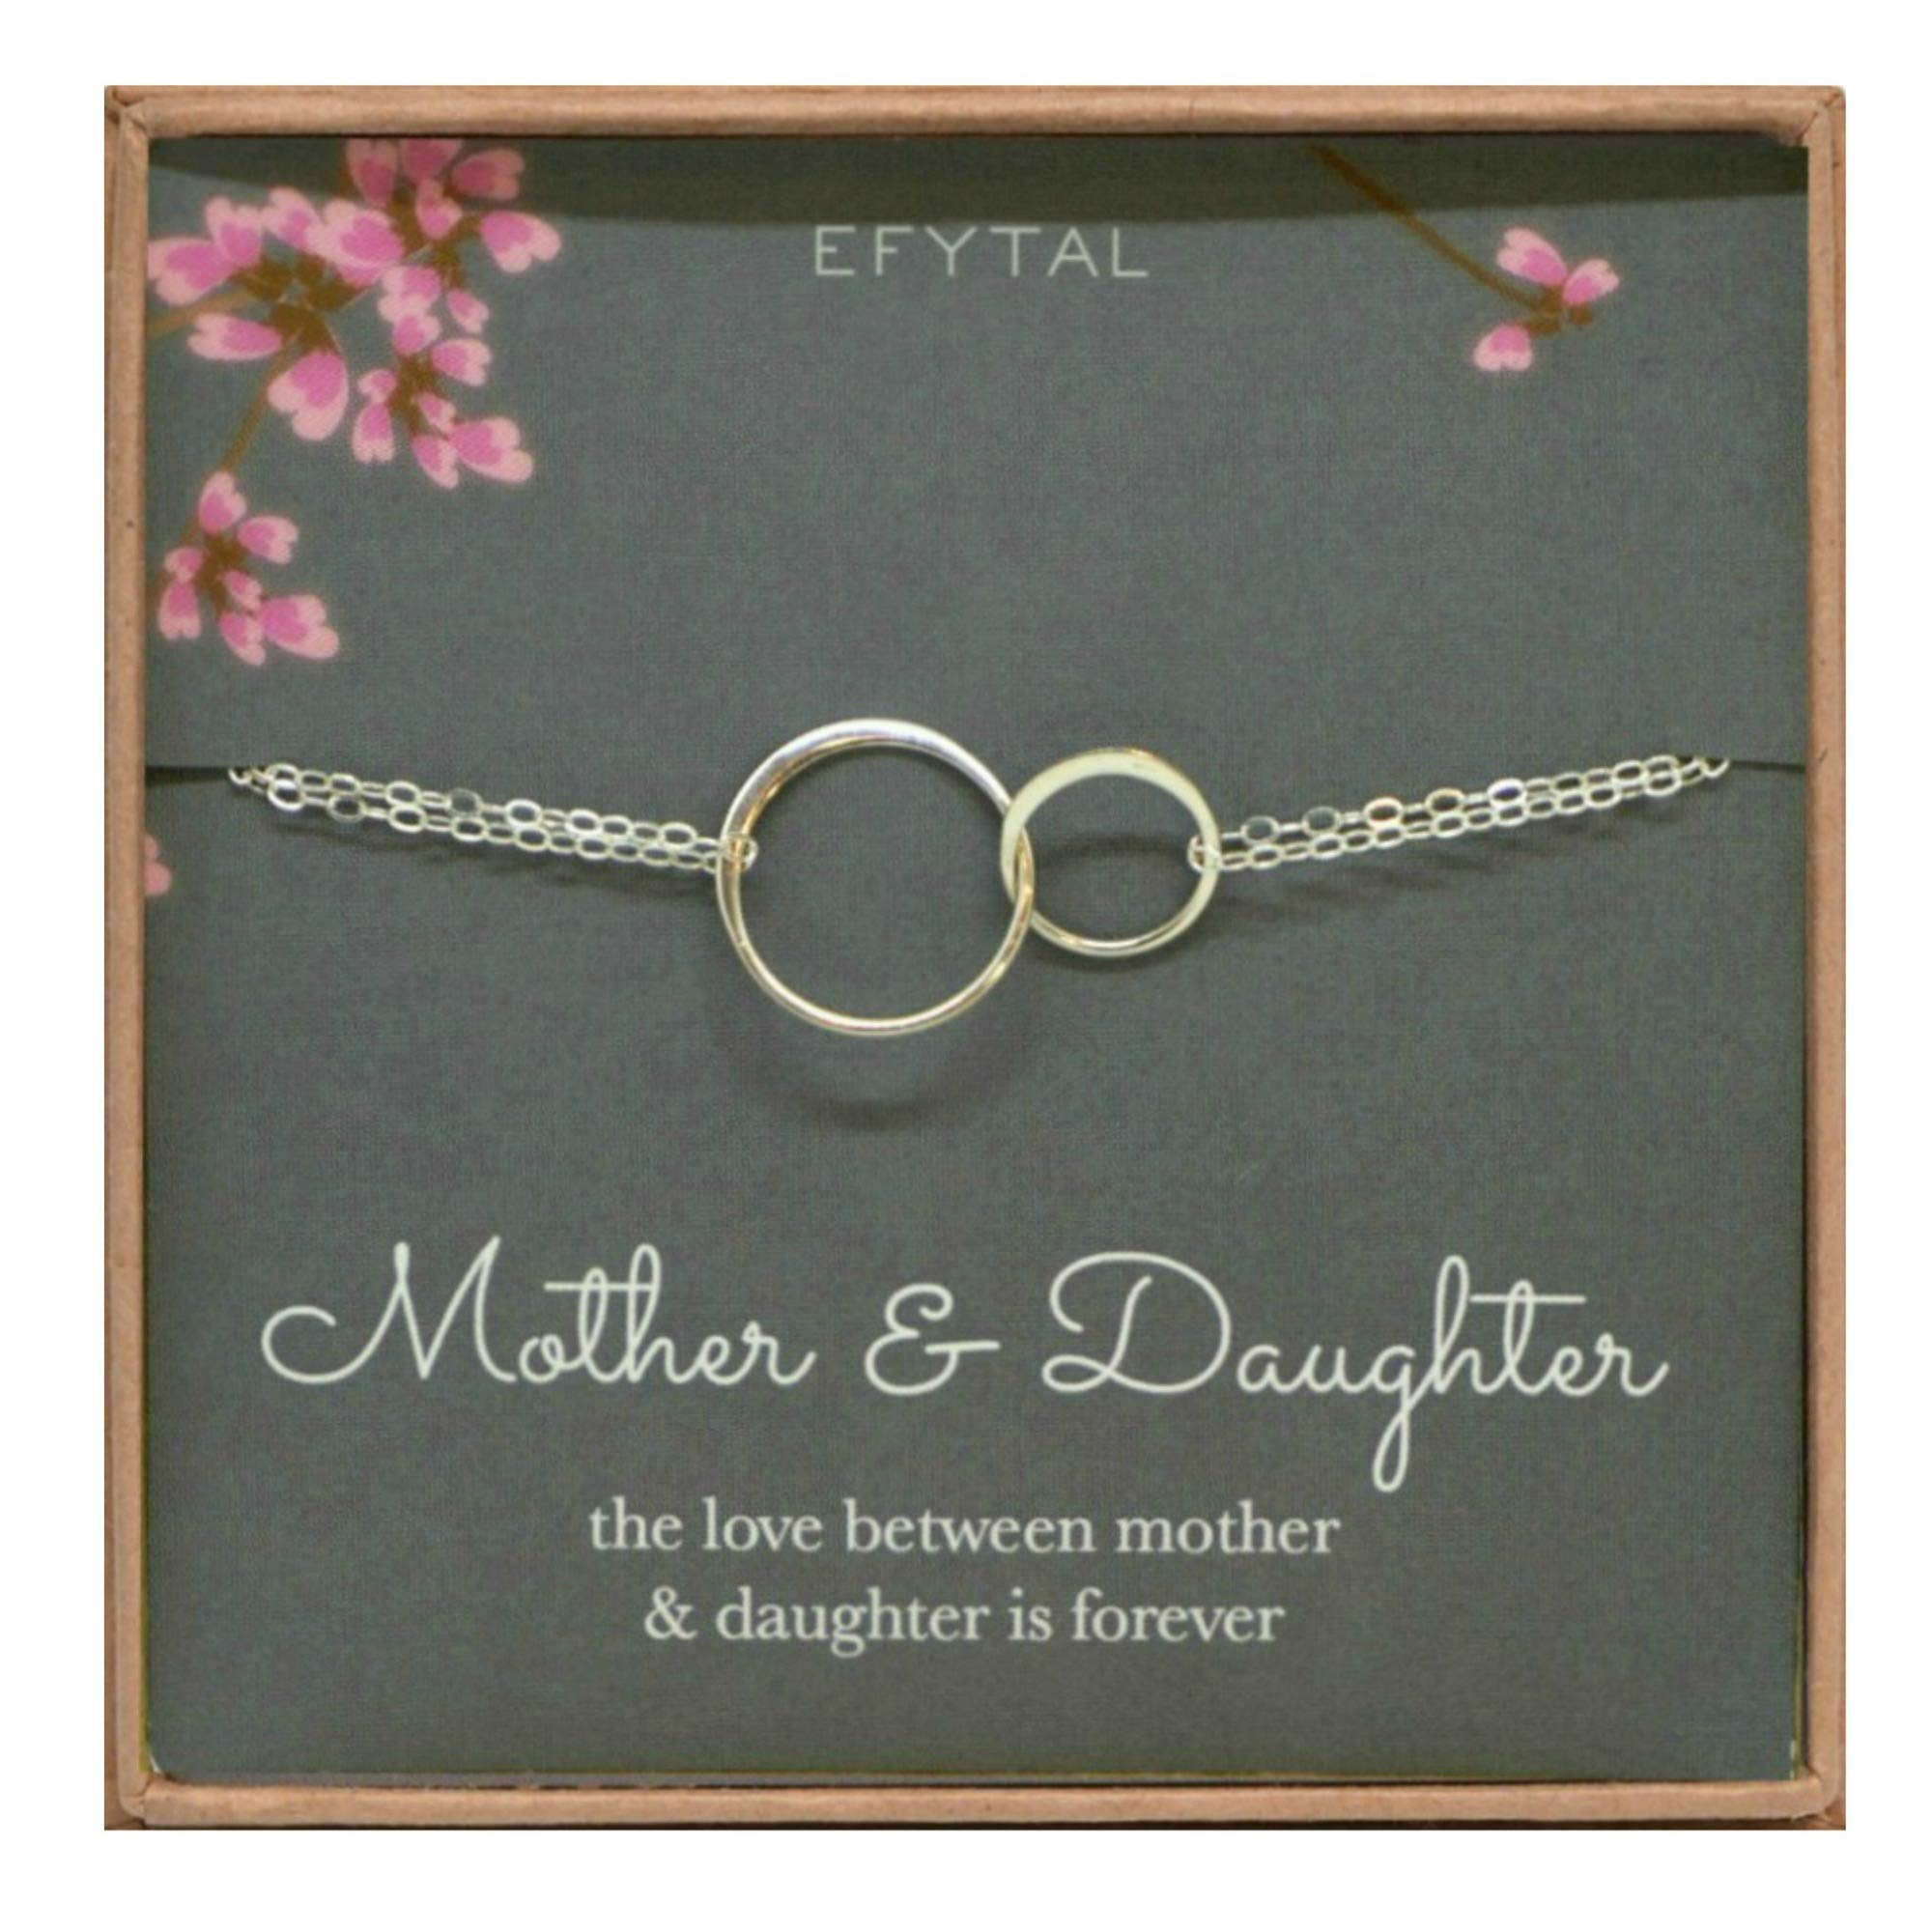 EFYTAL Mother Daughter Bracelet - Sterling Silver Two Interlocking Infinity Circles, Mothers Day Jewelry Gift by EFYTAL